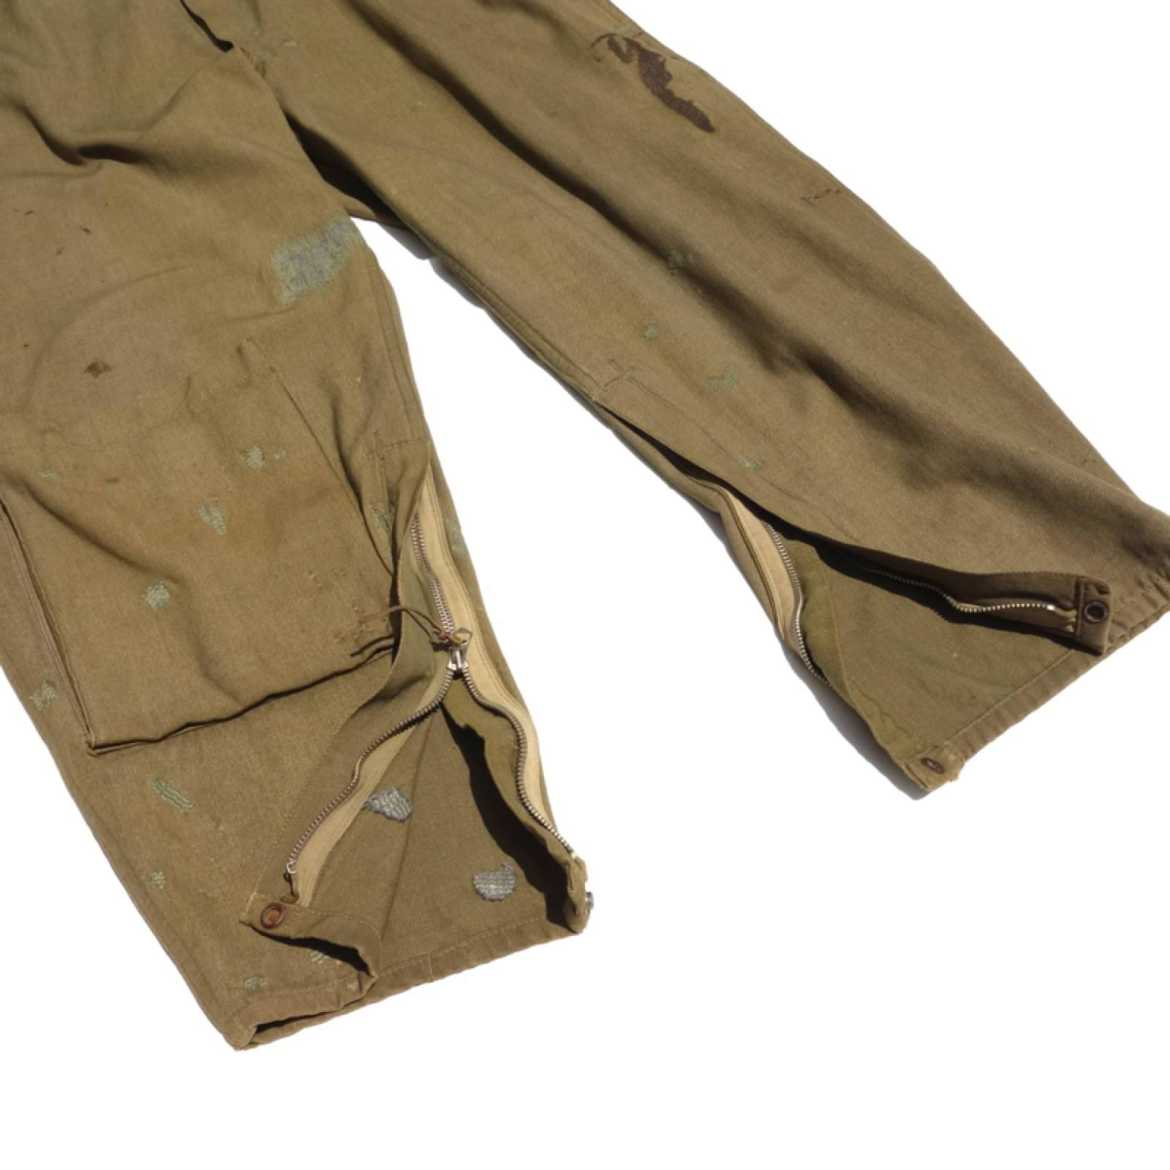 U.S. WWII Army Air Force Flight Suit vintage styling blog